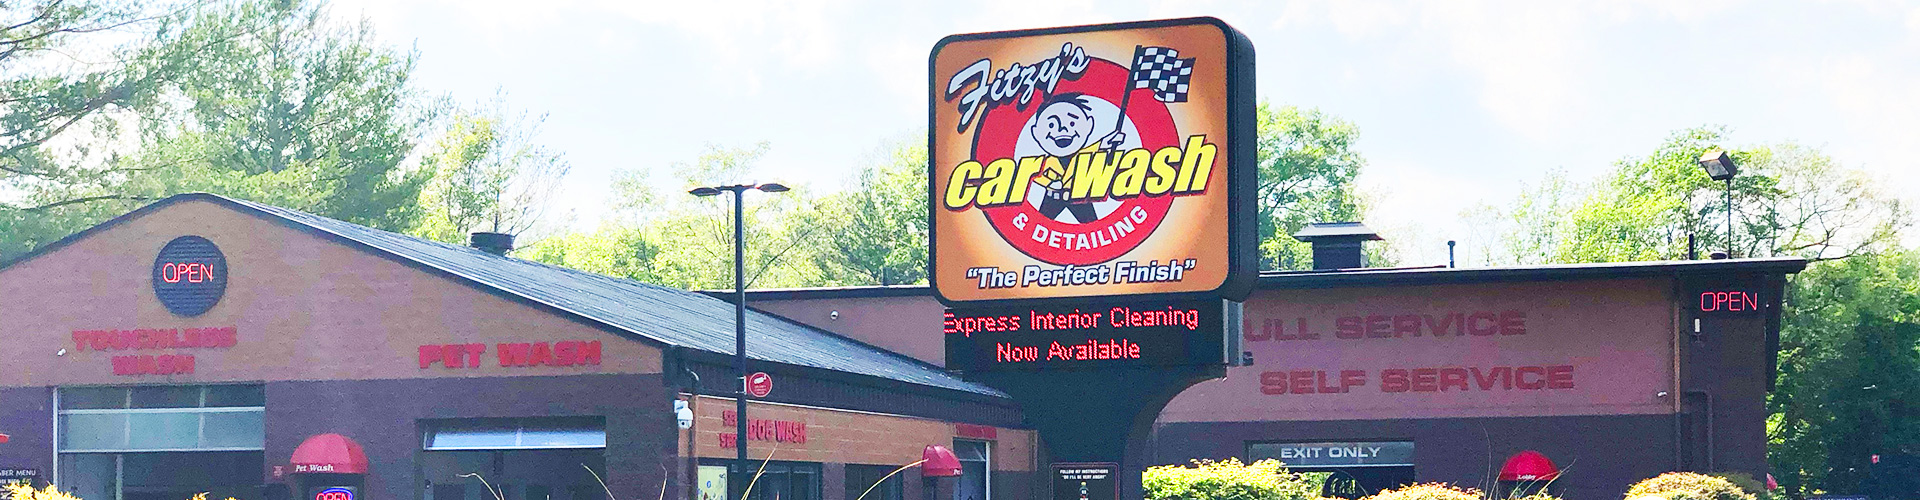 Professional Car Wash Services